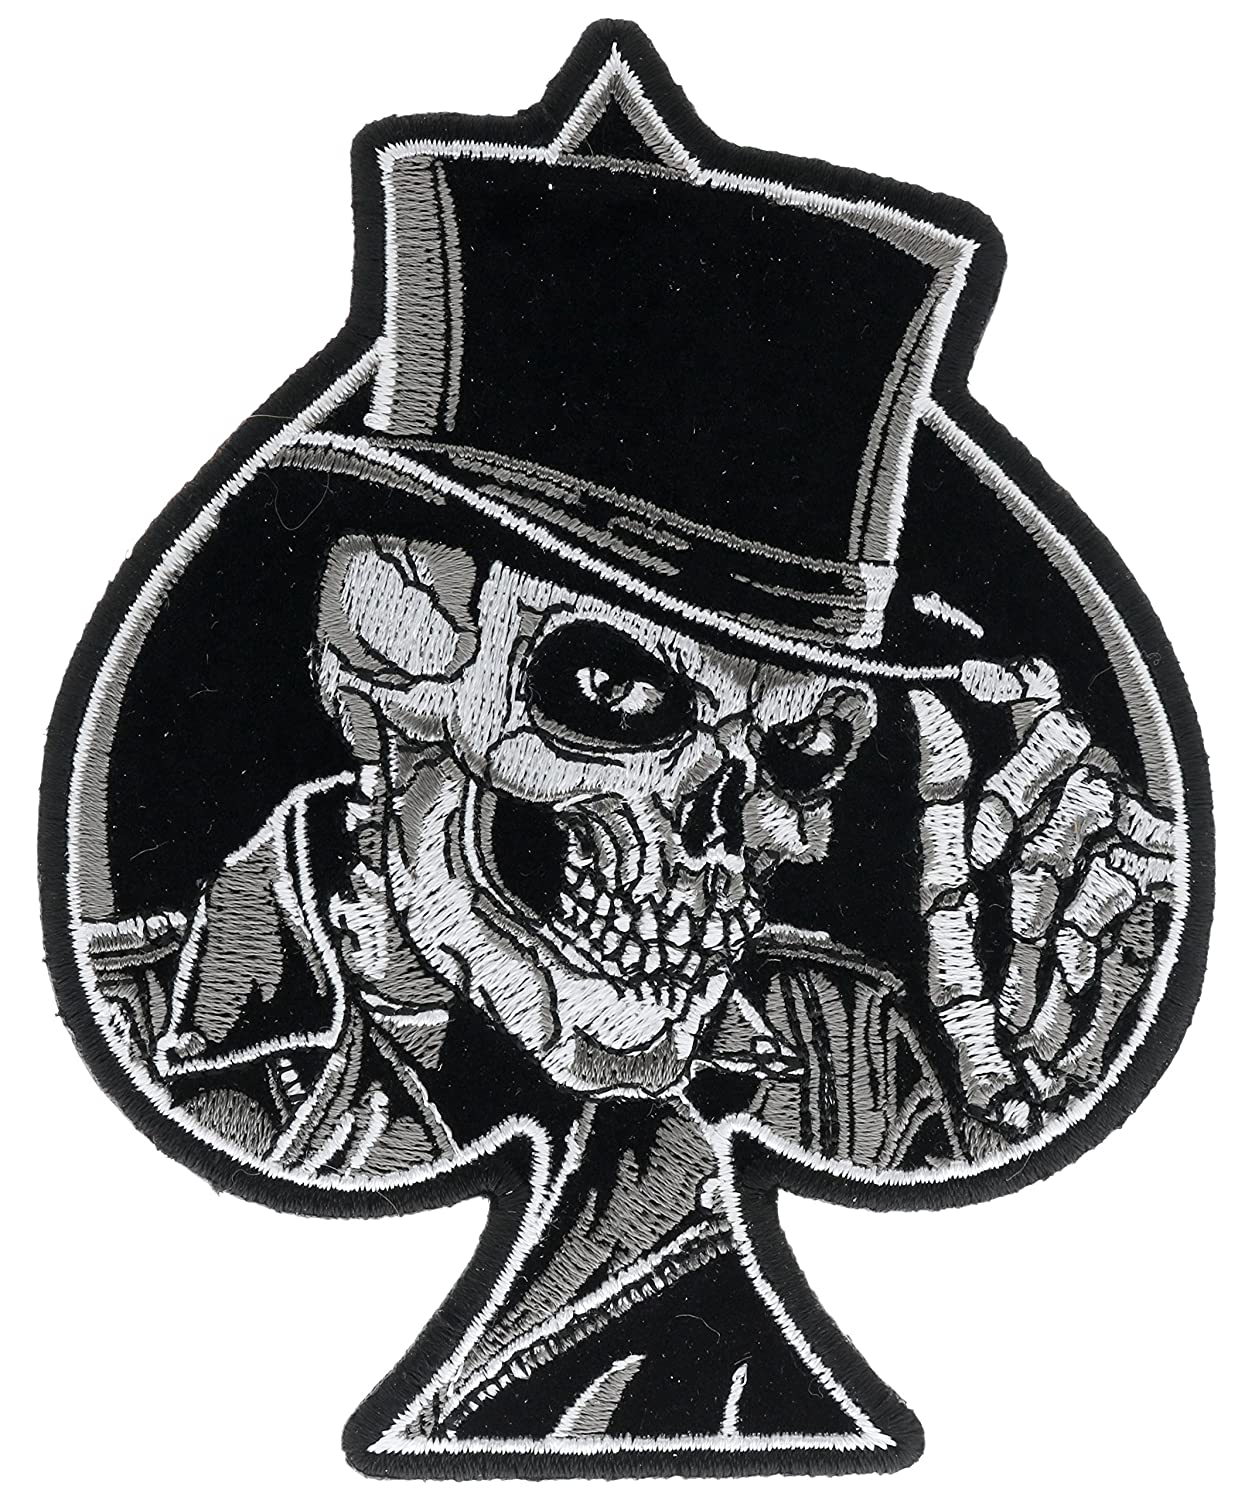 Ace spade top hat skull 4 x 5 inch iron on patch htl21037 amazon ca home kitchen